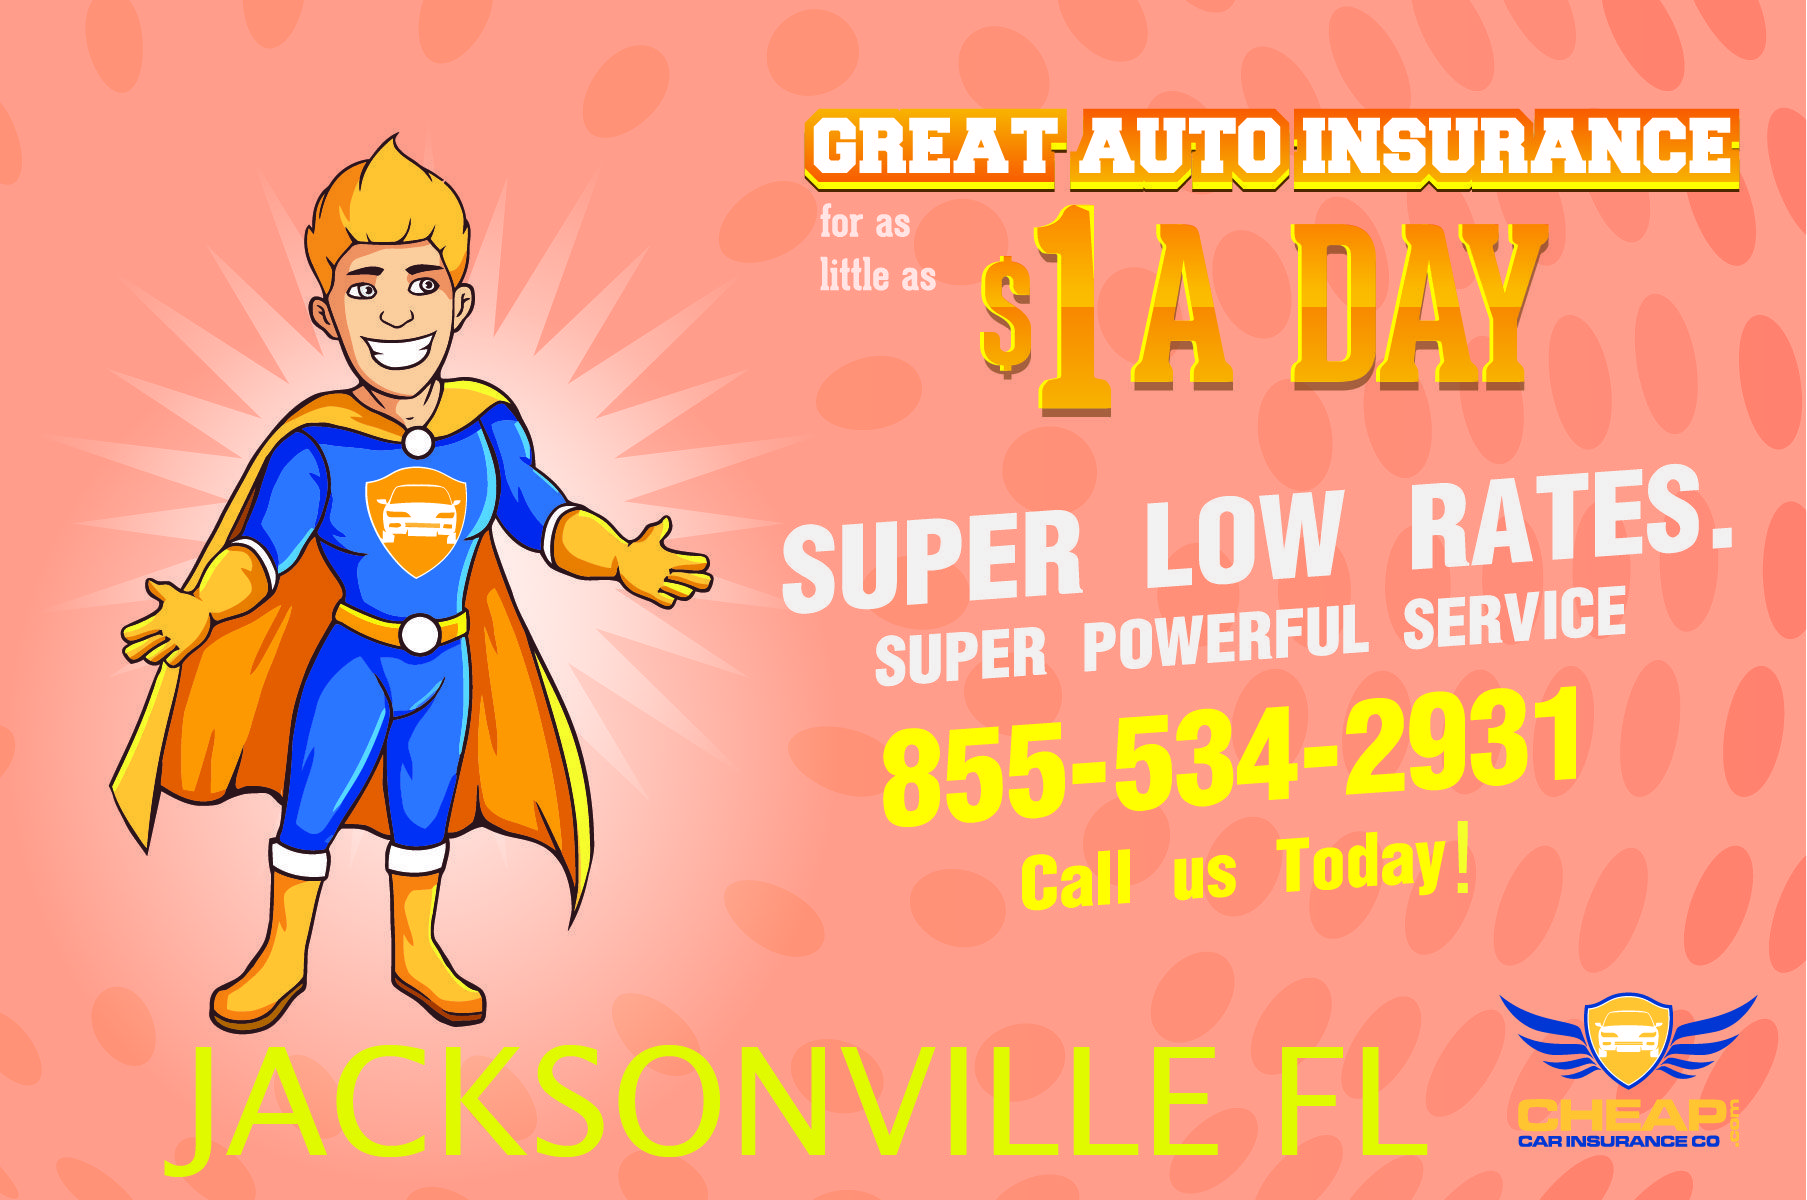 Cheap Auto Insurance Jacksonville Florida 20 Years Offering